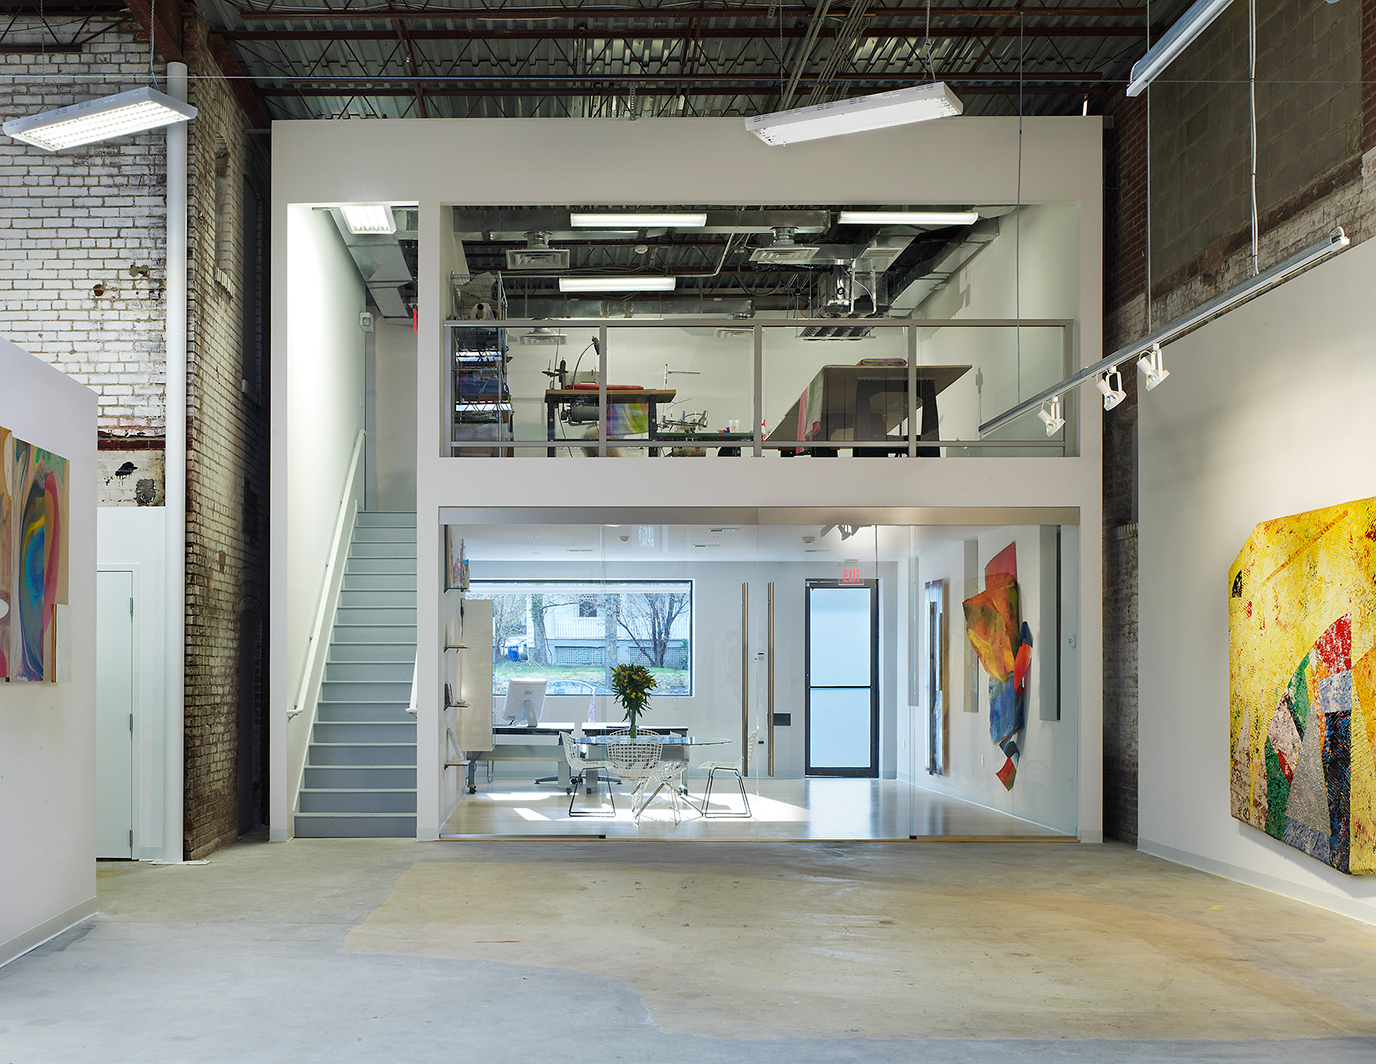 Dcmud the urban real estate digest of washington dc for The space studio architects